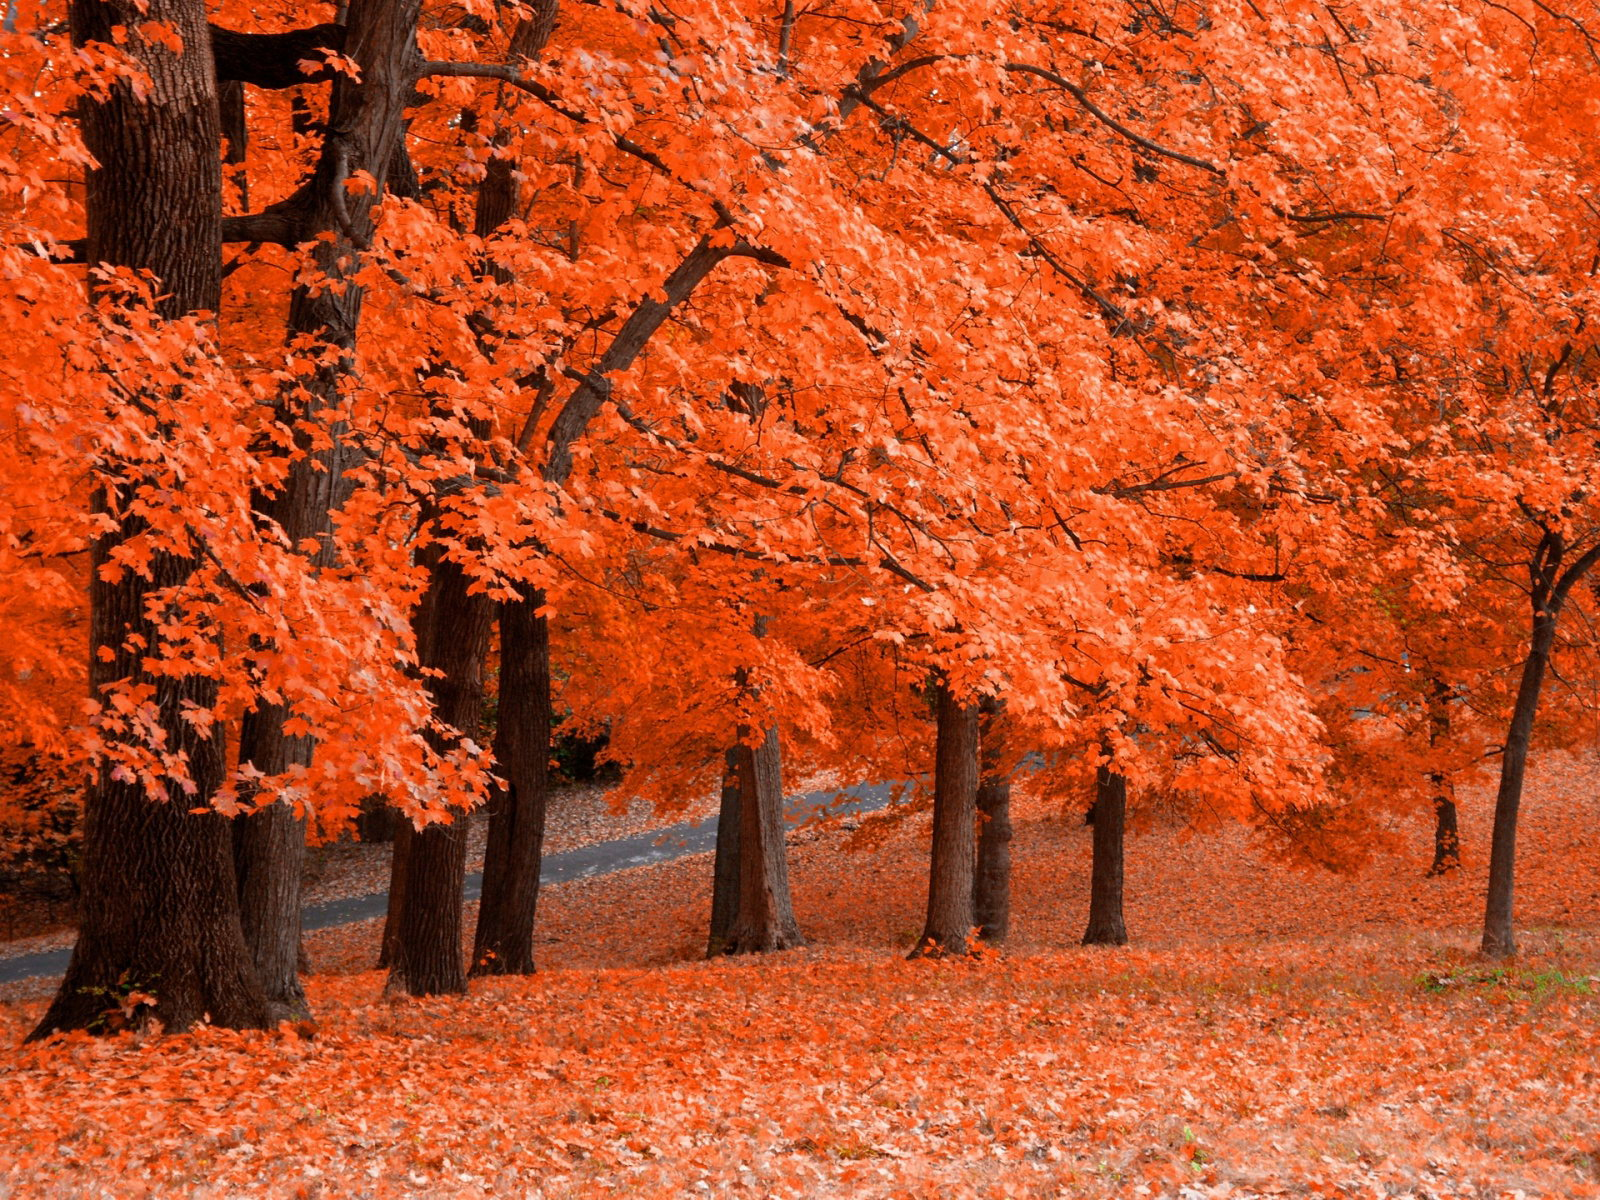 Autumn Wallpapers  Free Autumn Desktop Wallpaper Desktop 1600x1200